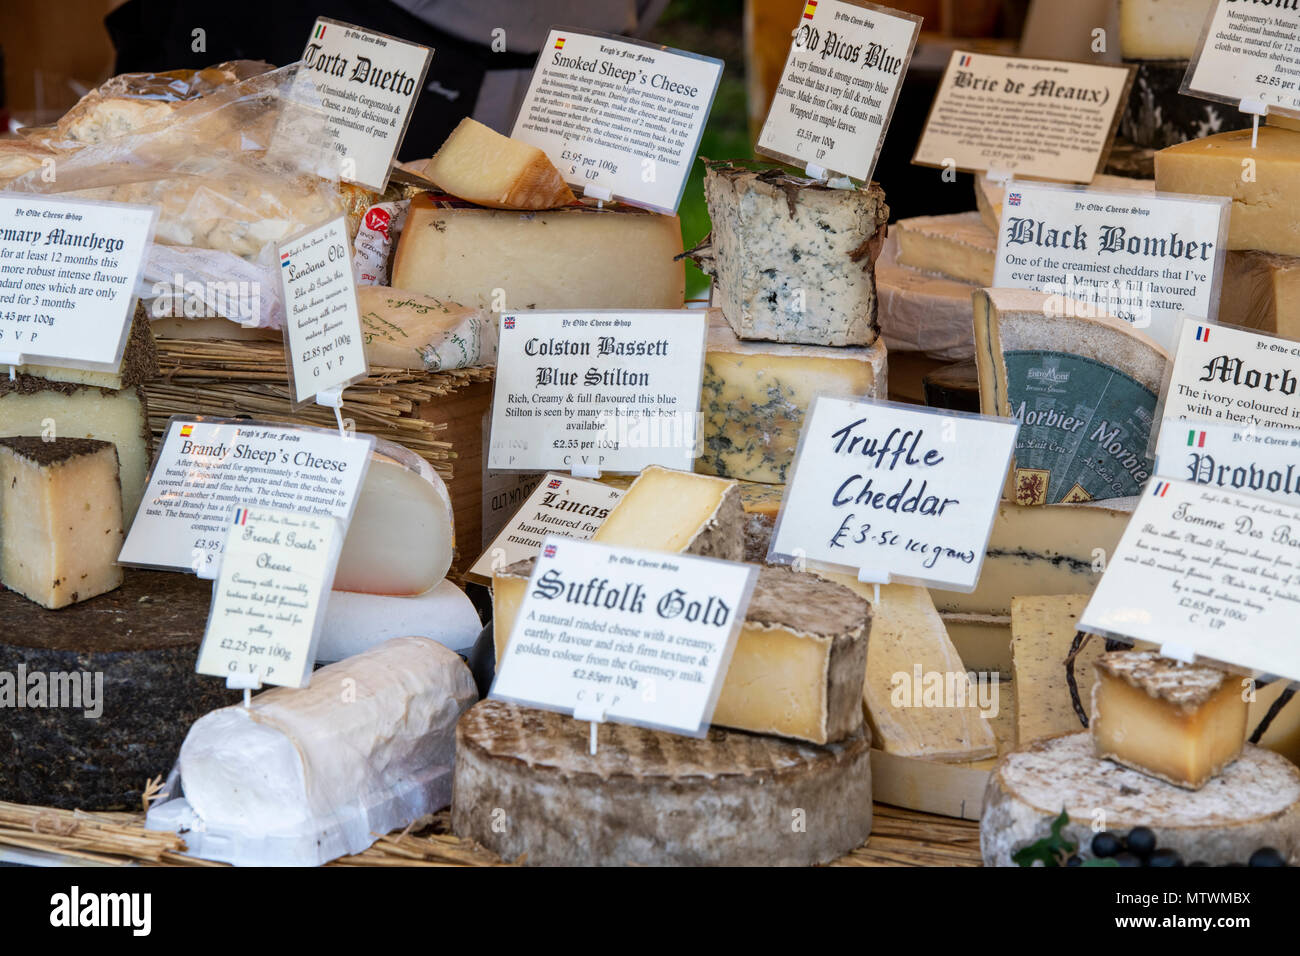 Speciality and Artisan cheese stall at a food festival. Oxfordshire, England - Stock Image